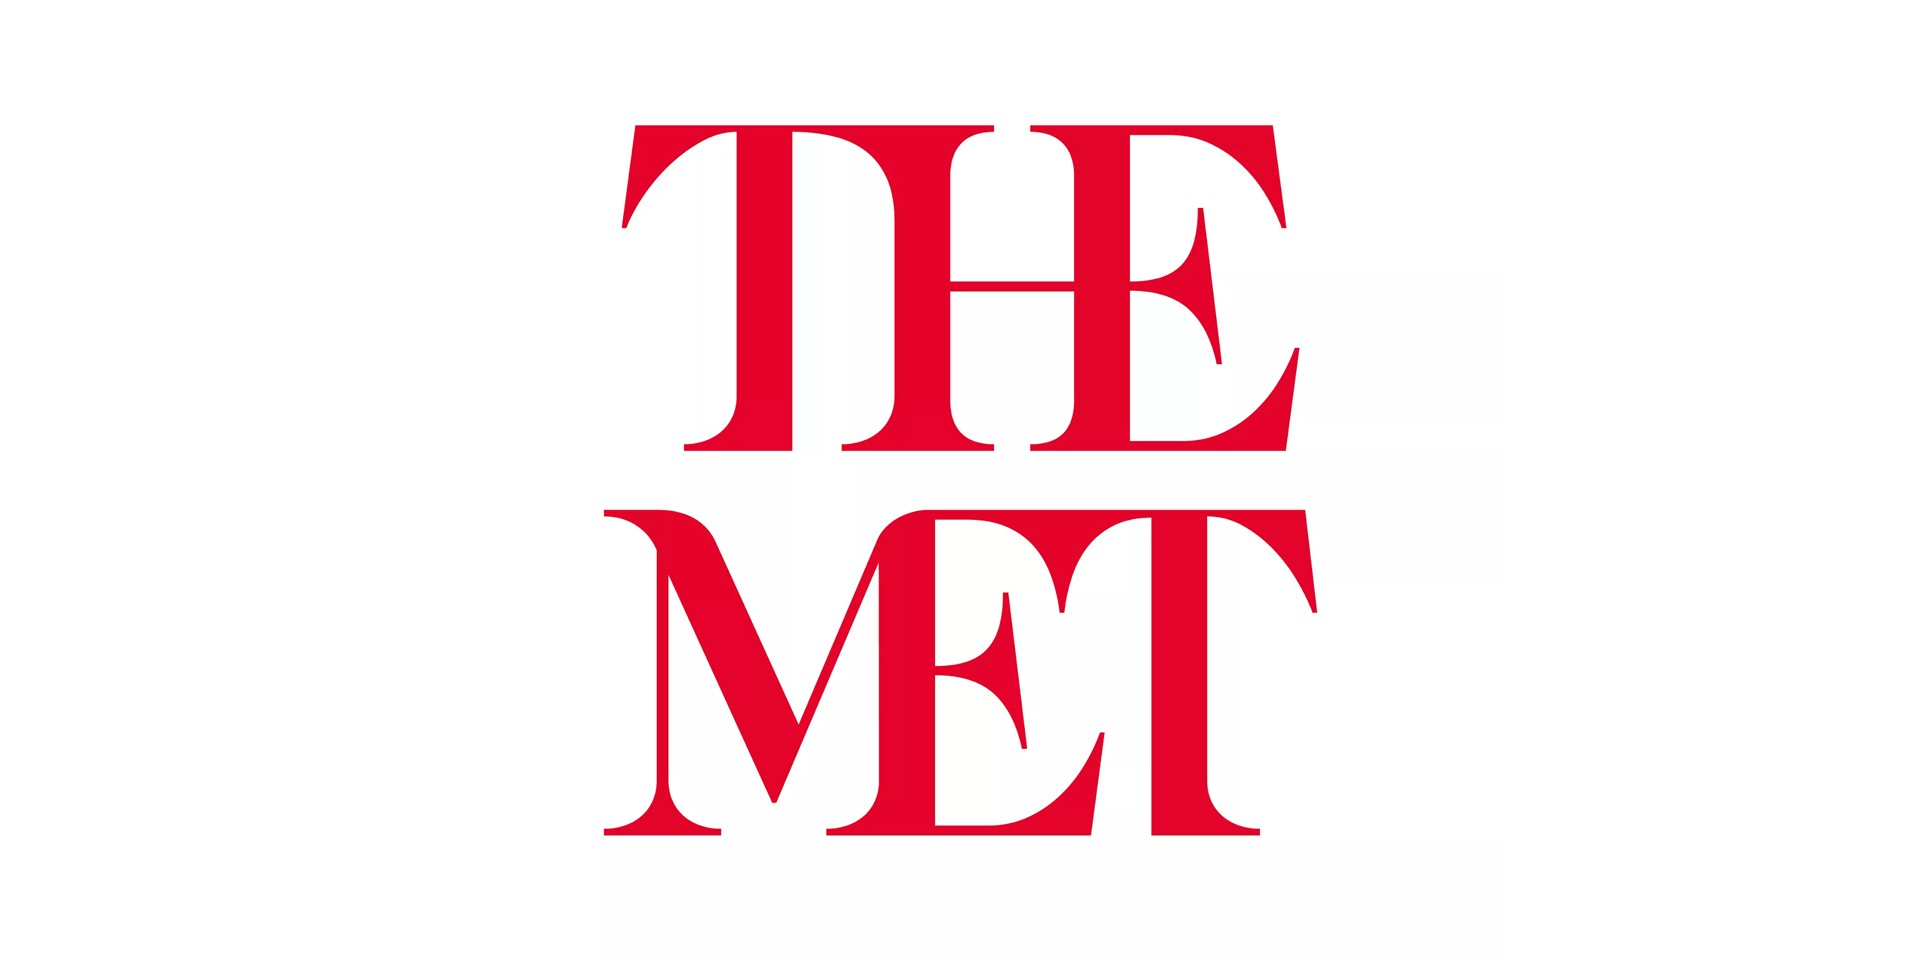 Here's how you can watch the 2021 MET Gala from Southeast Asia